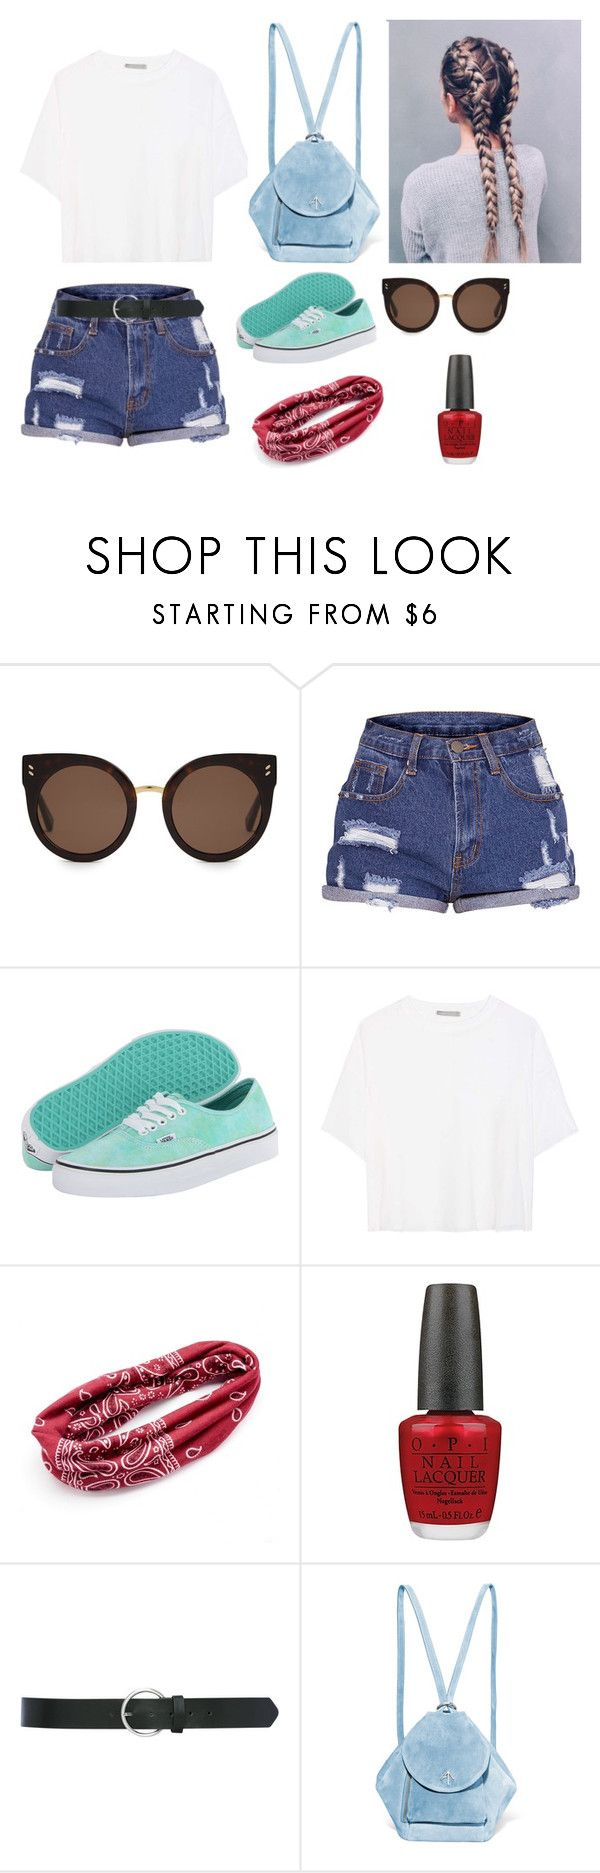 """Untitled"" by u8278 ❤ liked on Polyvore featuring STELLA McCARTNEY, Vans, Vince, Mudd, OPI, M&Co and MANU Atelier"